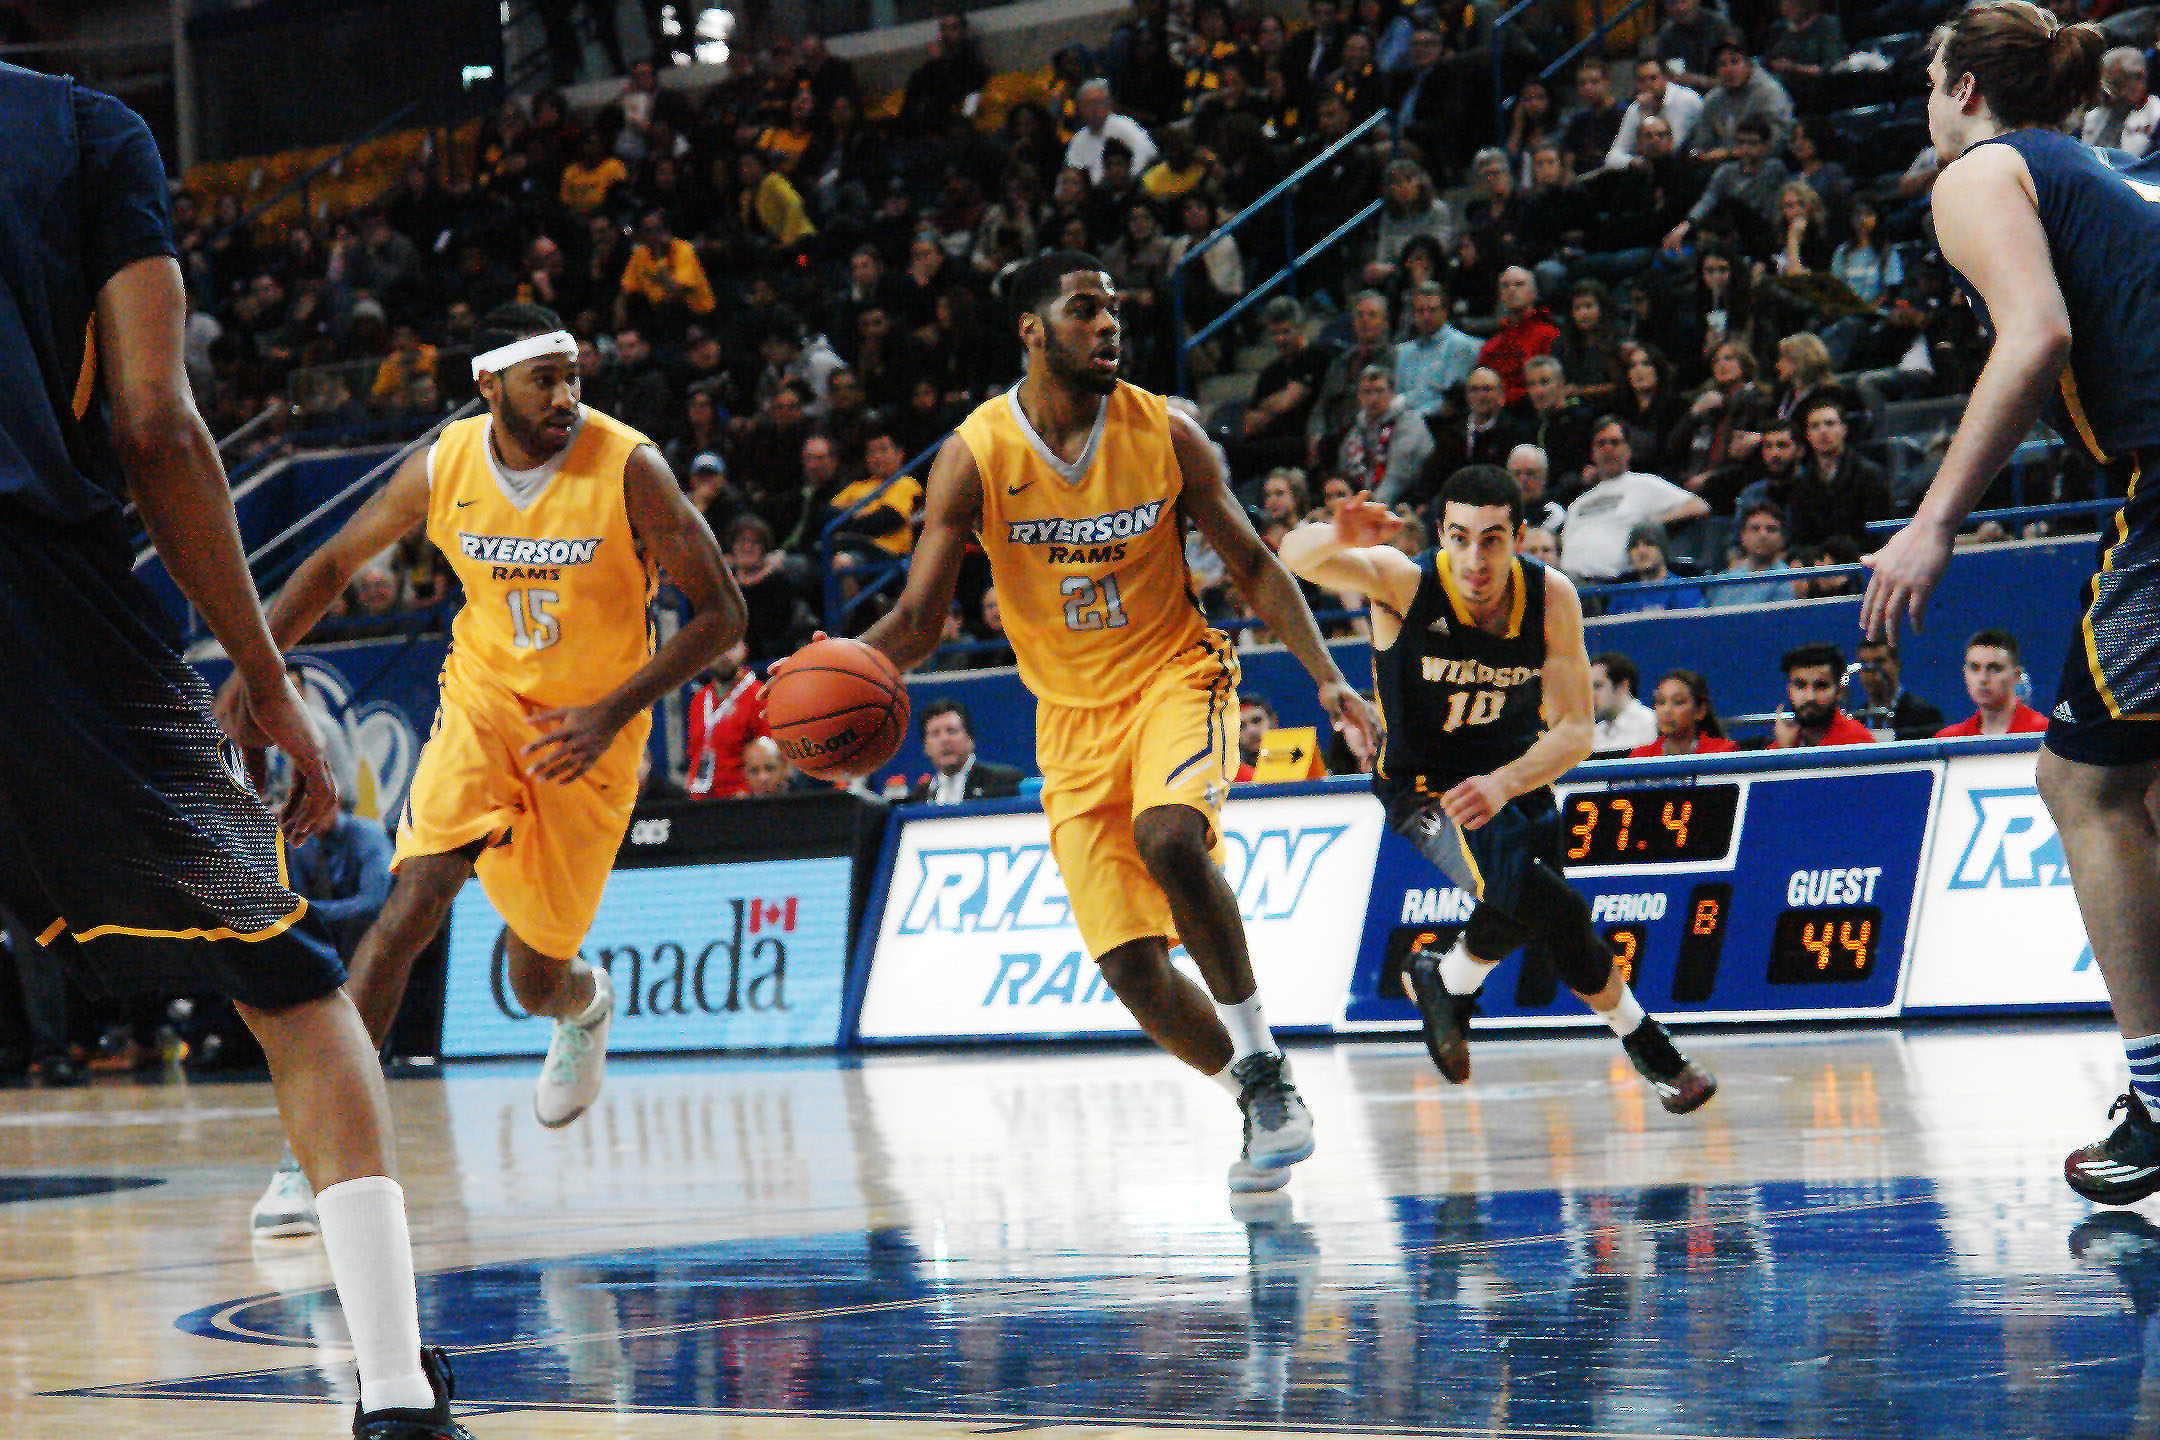 CIS basketball needs Toronto for it to grow. (Iram Partap/Ryersonian Staff)